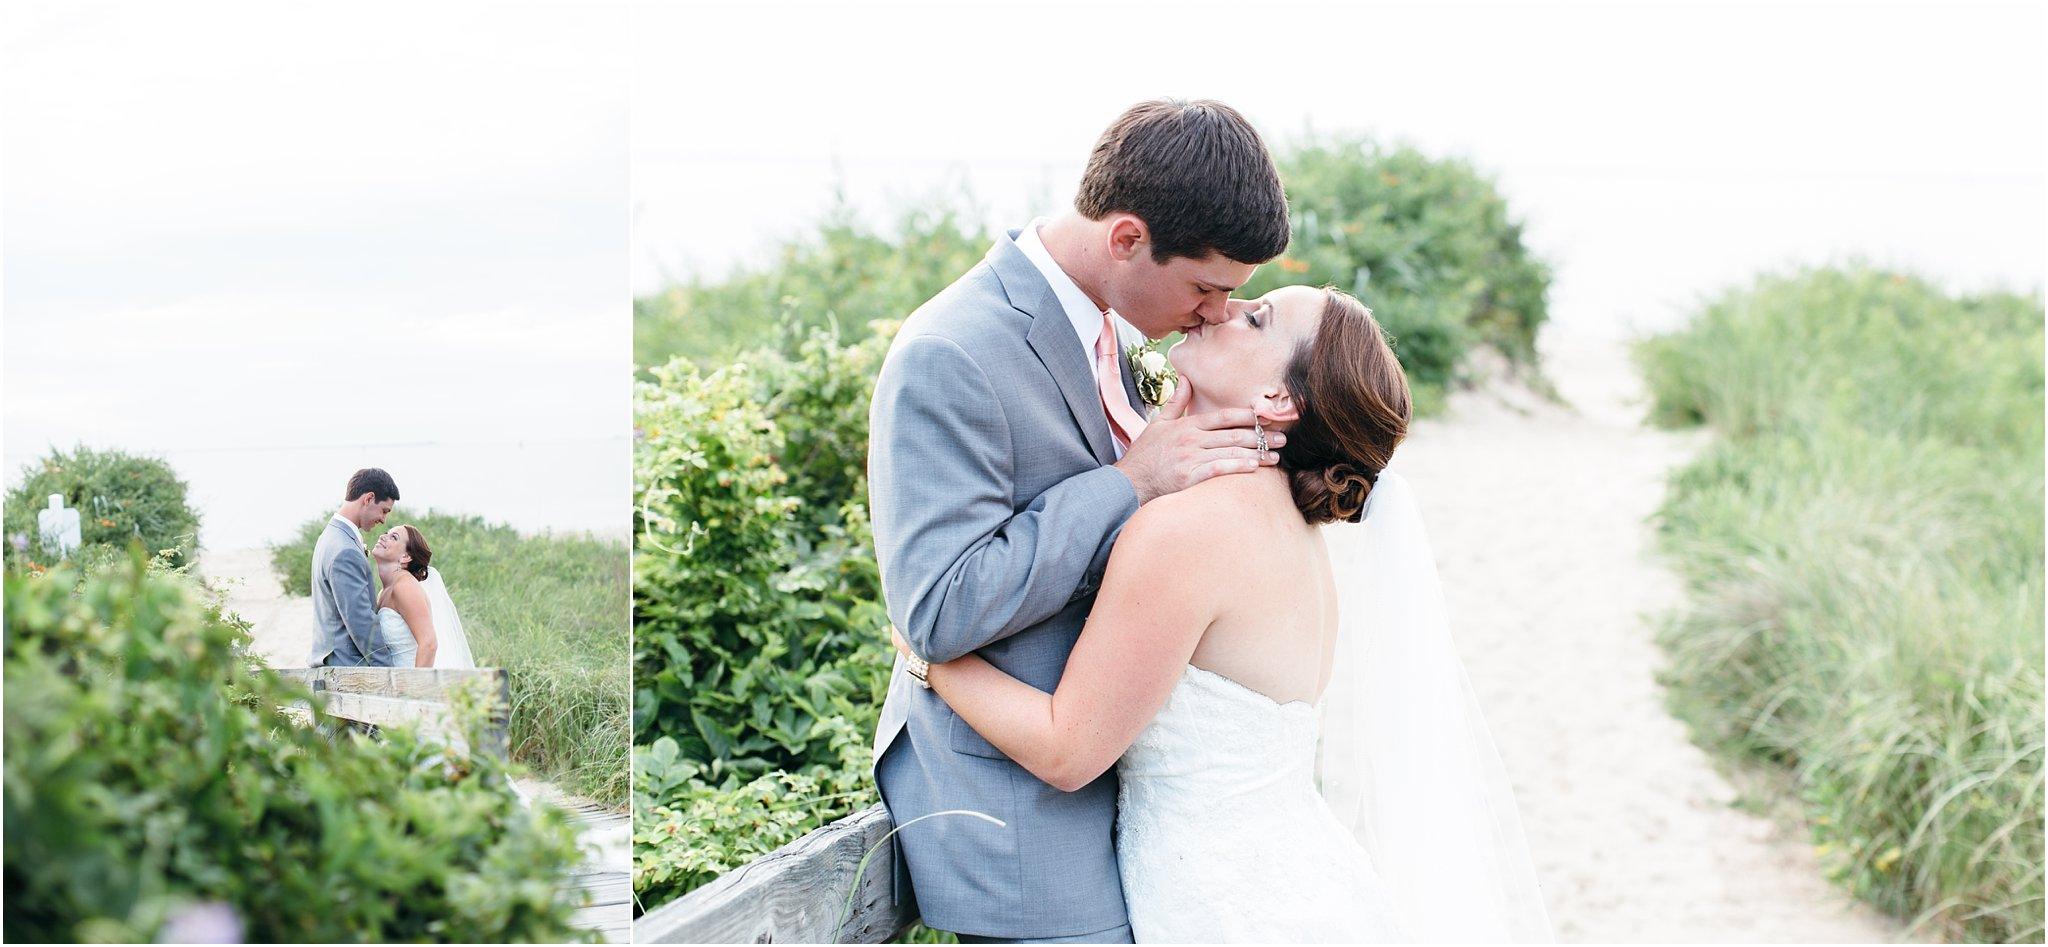 jessica_ryan_photography_wedding_photography_virginiabeach_virginia_candid_authentic_wedding_portraits_marina_shores_yacht_club_chesapeake_bay_1908